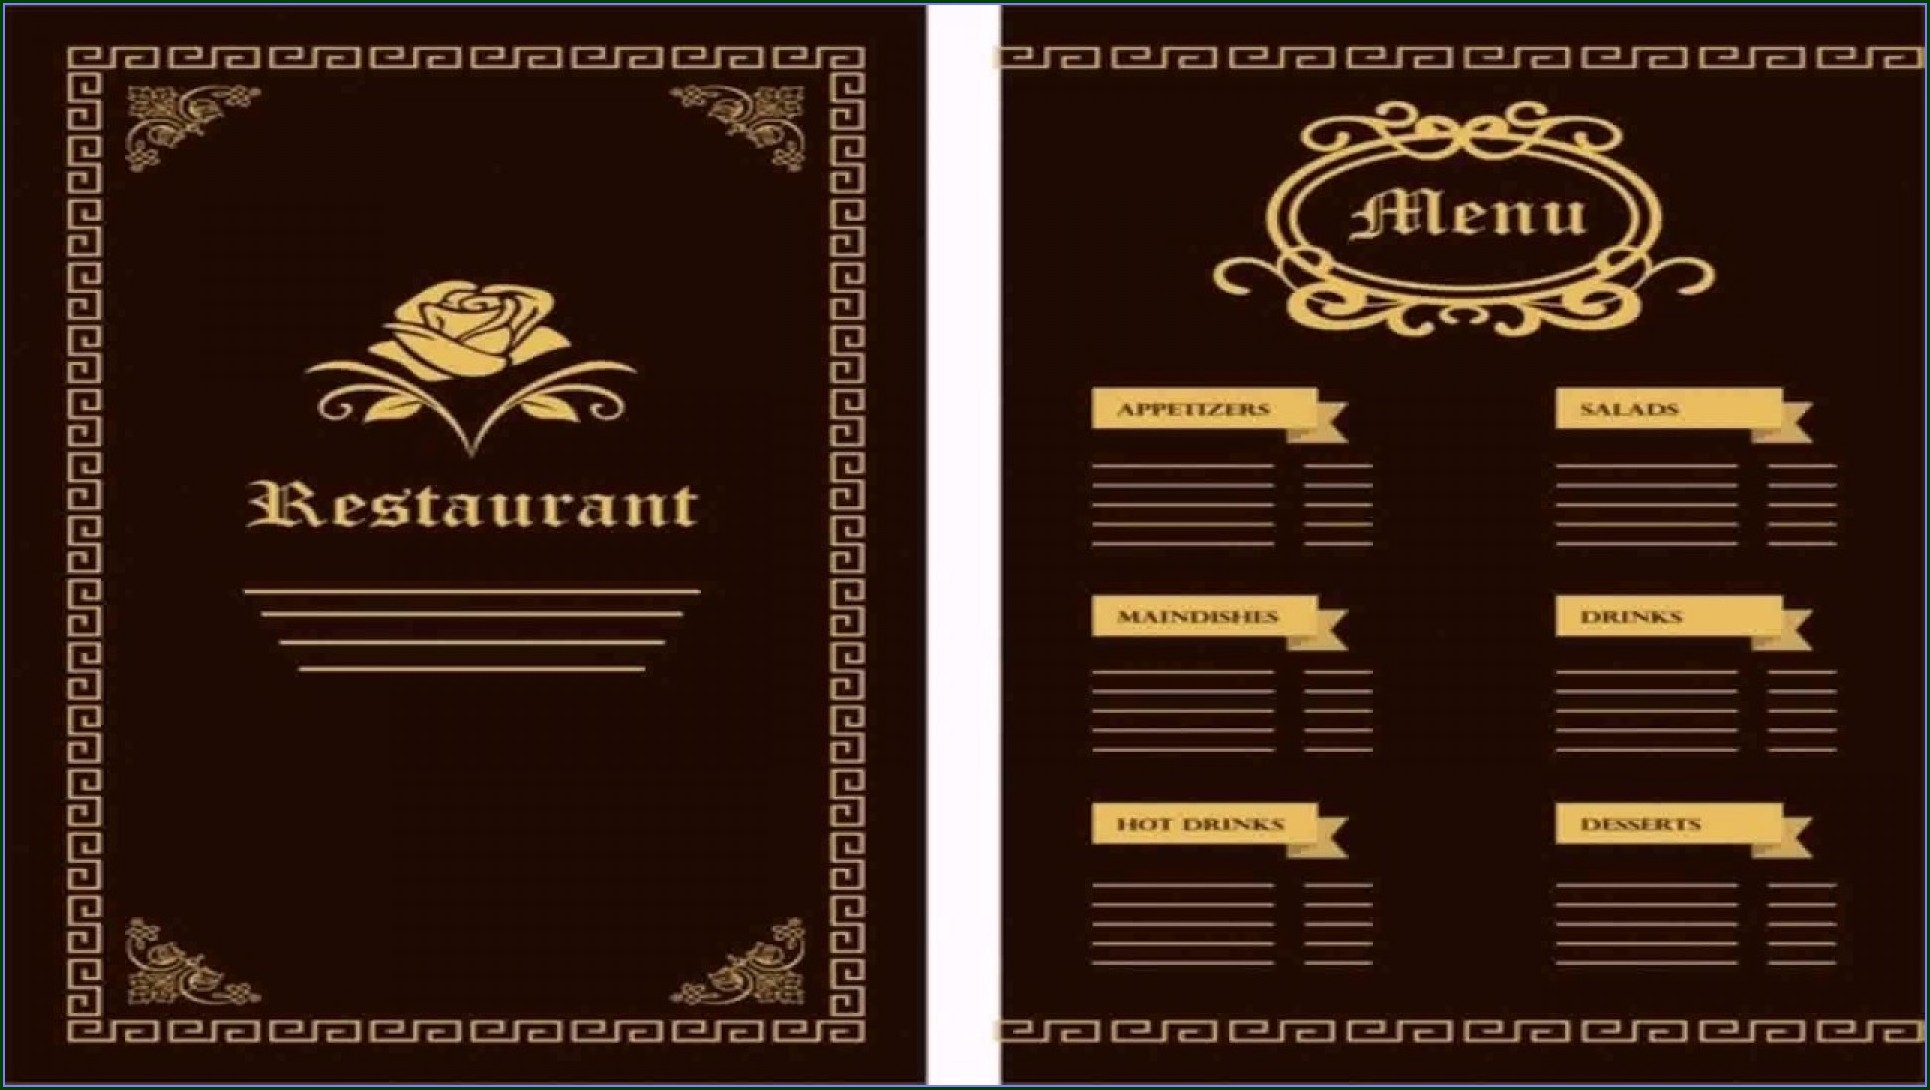 Menu Designs Templates Free